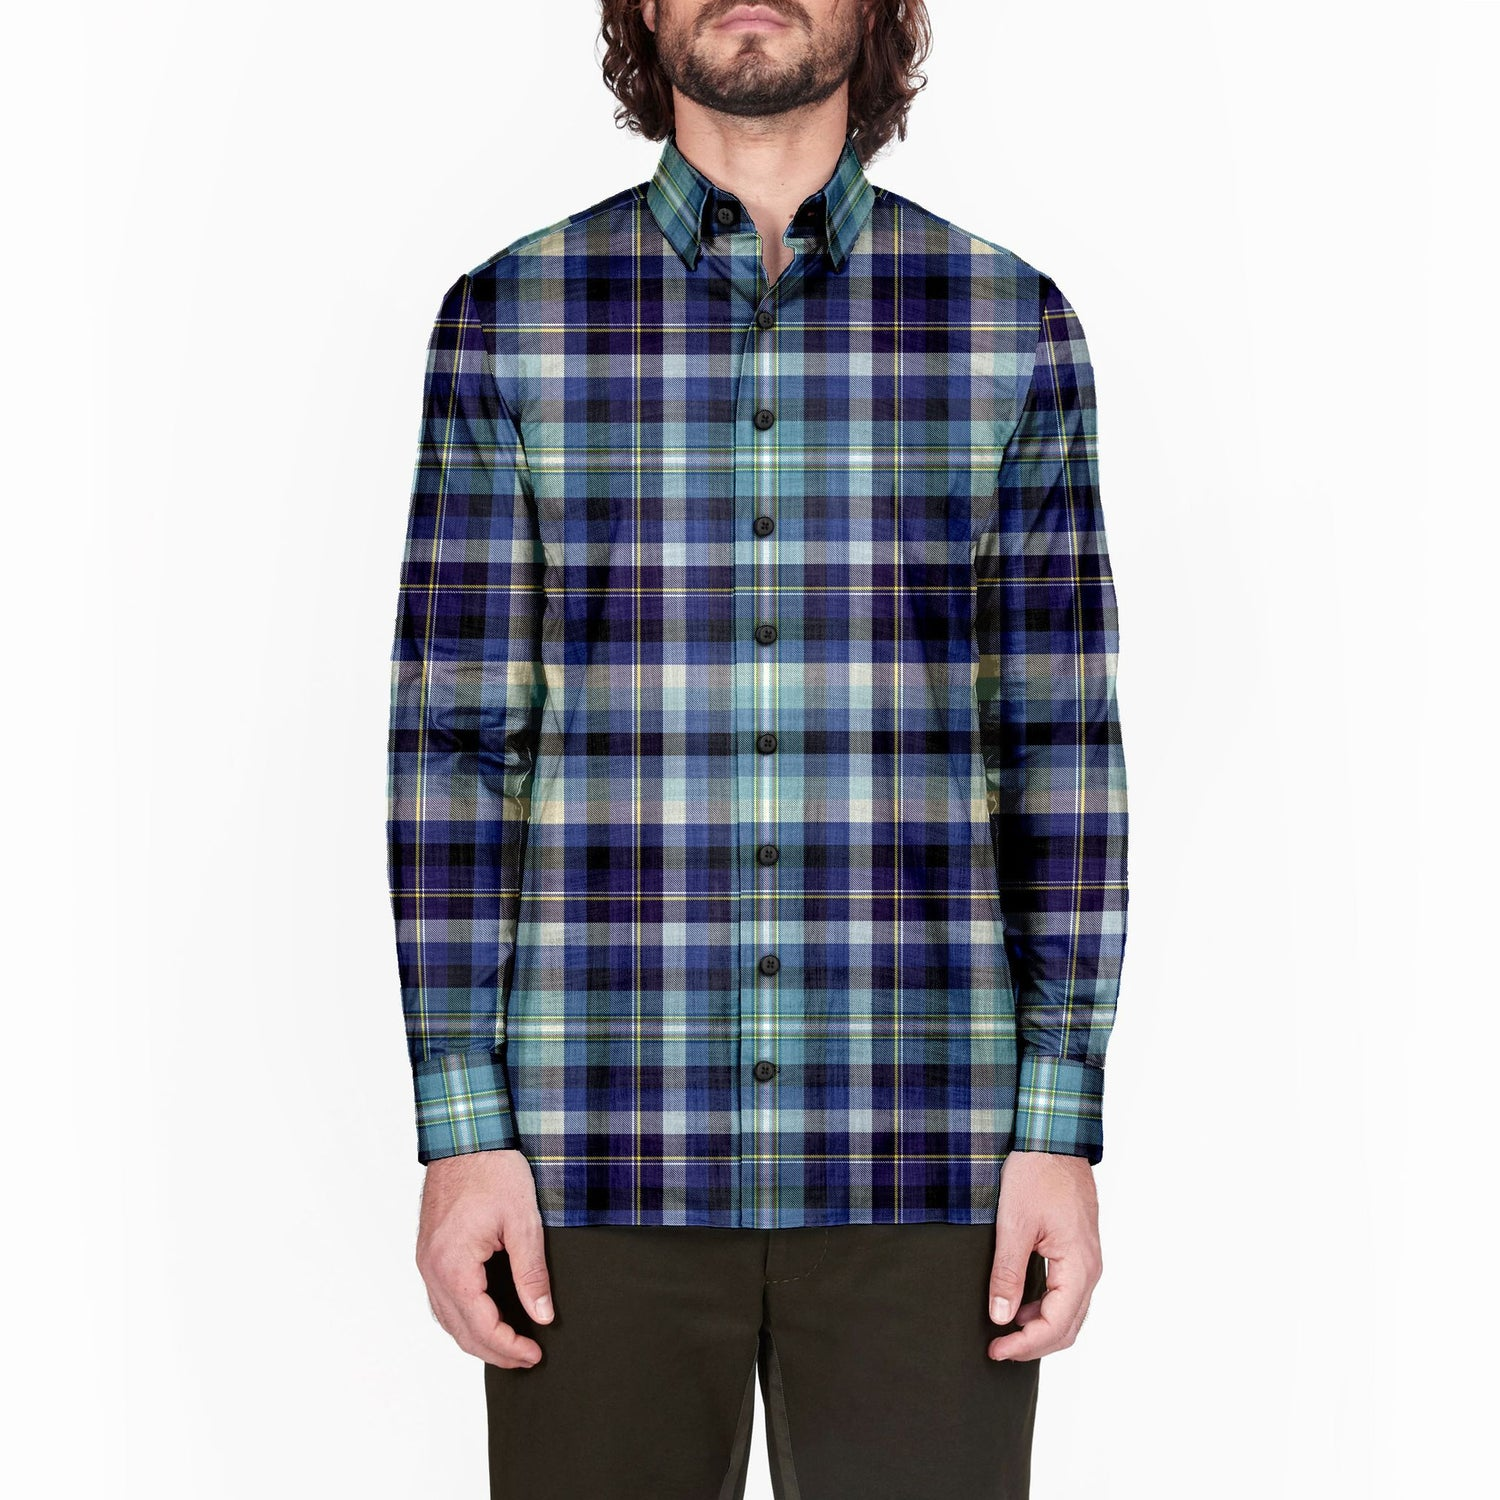 The Edward Scissorhands Plaid Flannel